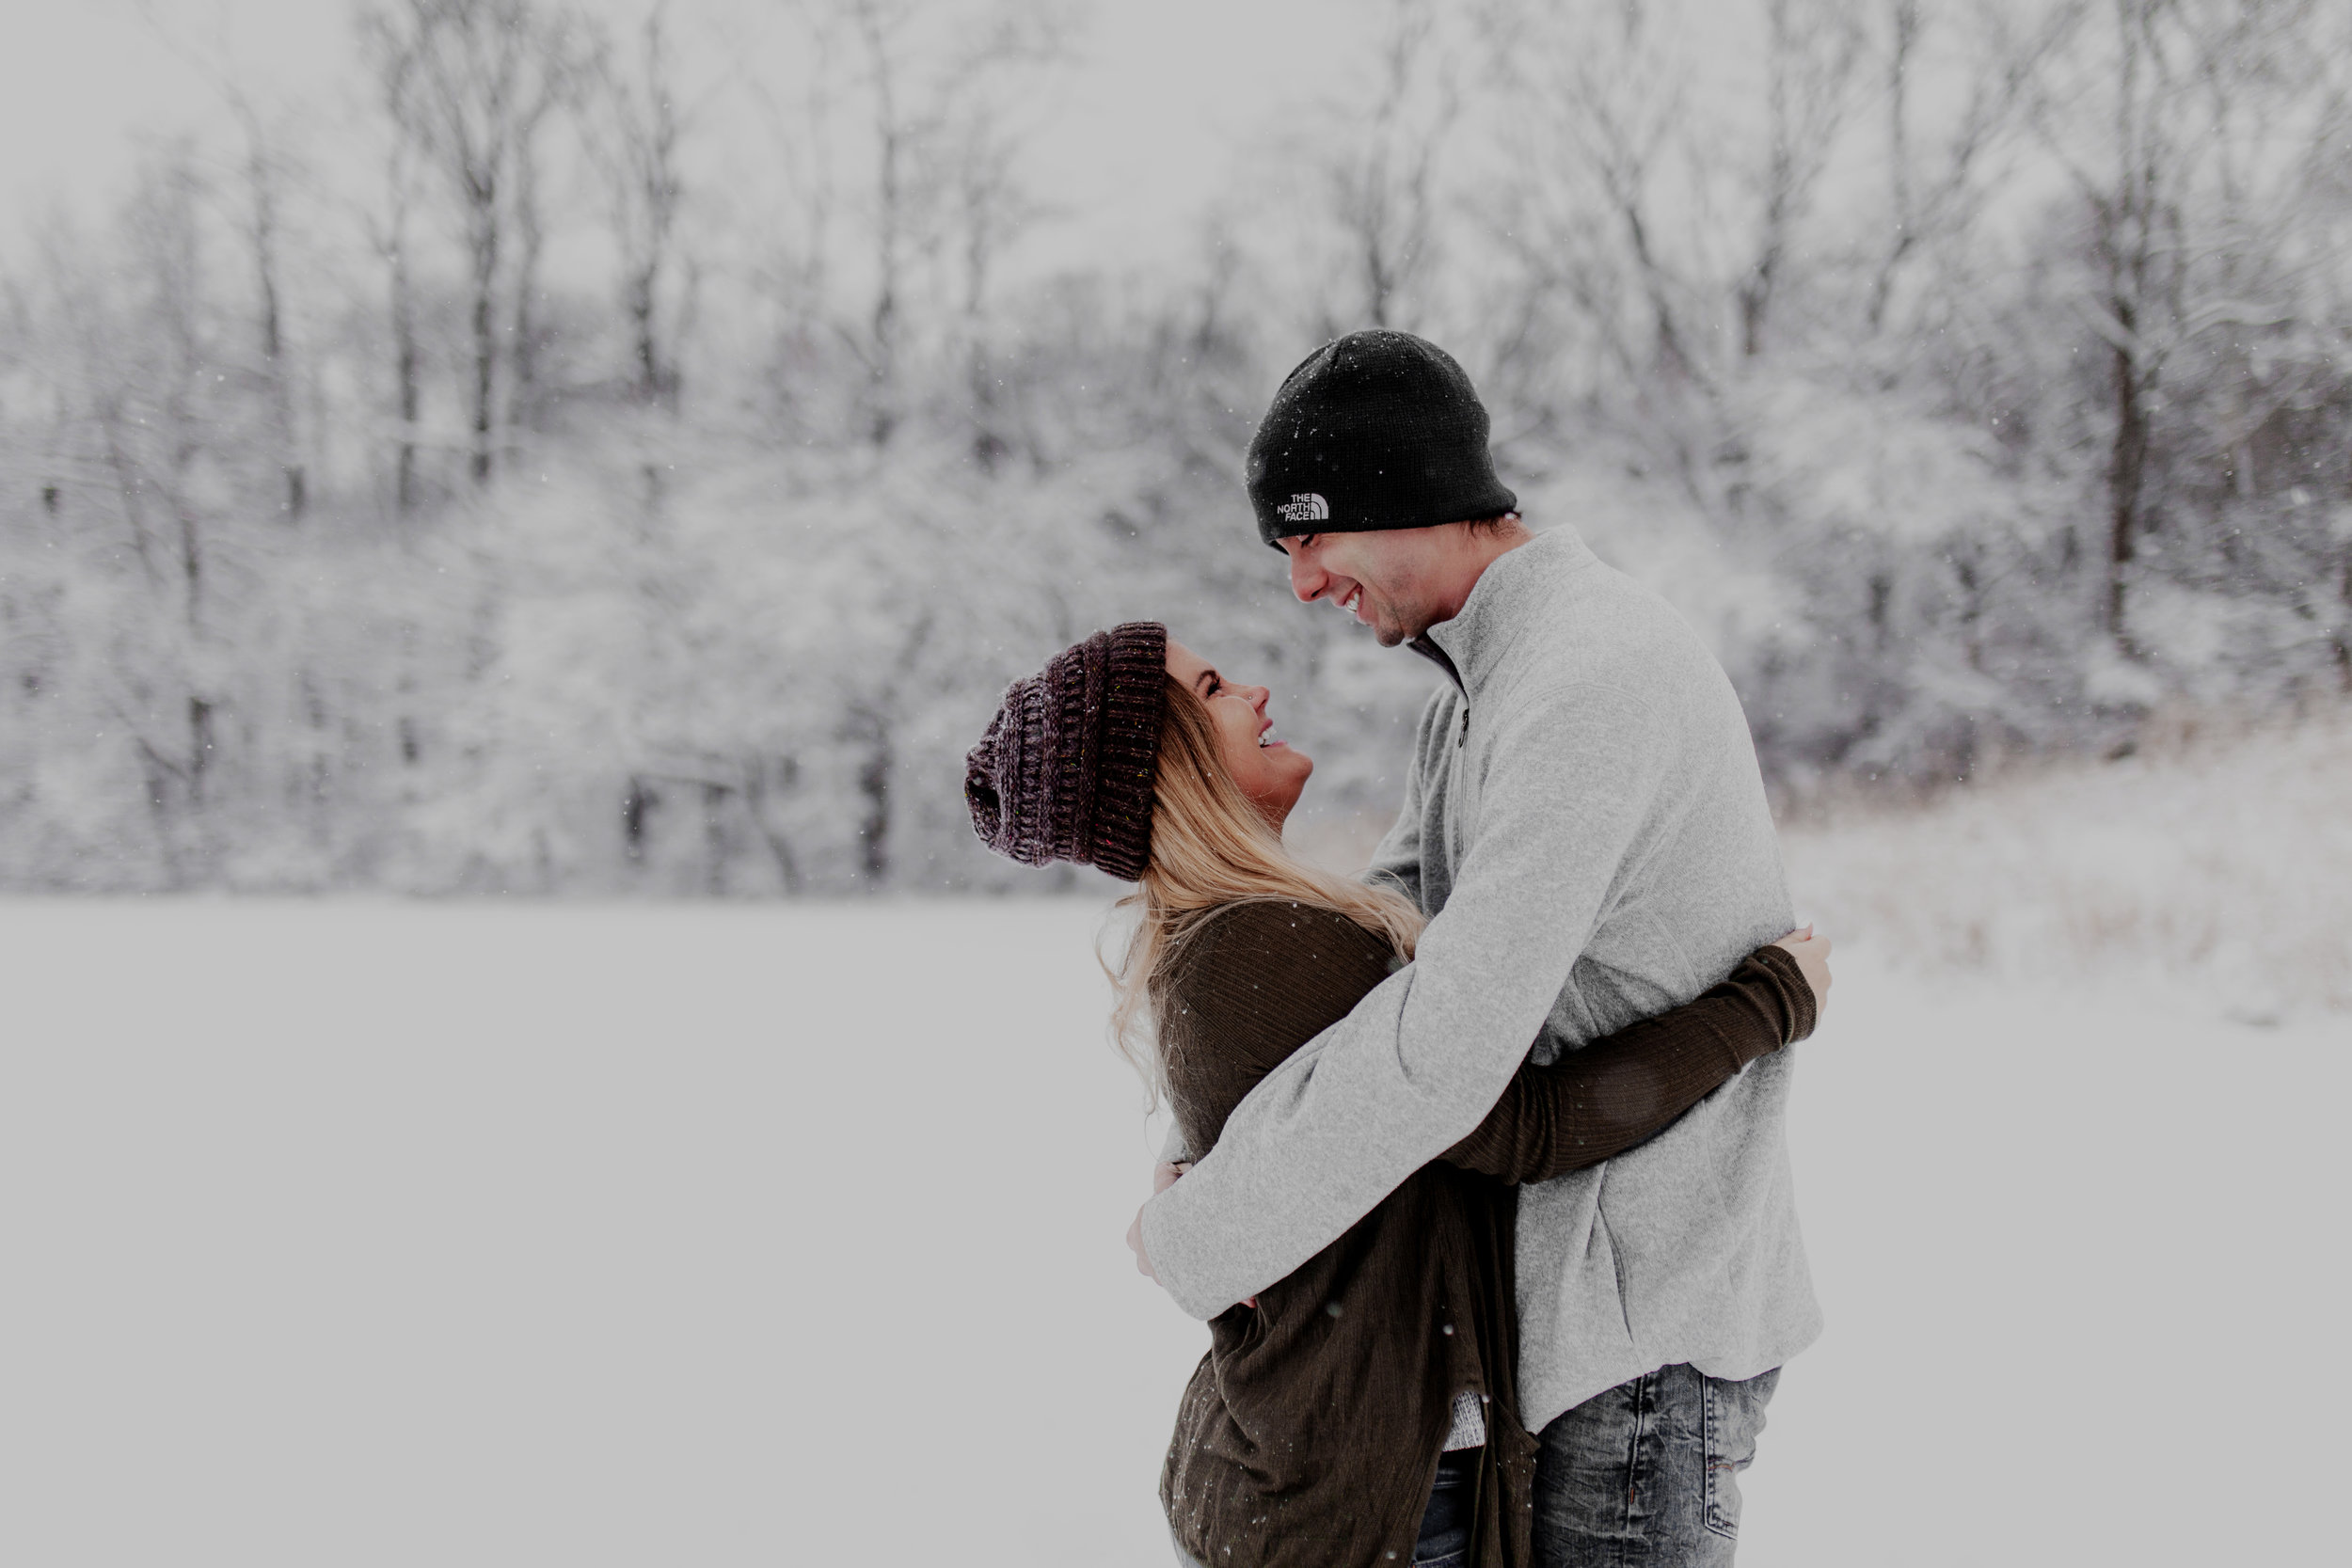 Kirstin + Brandon - January 2019 — Kirstin and Brandon were brave enough to go out in a crazy snow storm with me. We celebrated their engagement by taking some dreamy snow pictures. I've been friends with Kirstin since high school so it was extra special to be part of their experience.